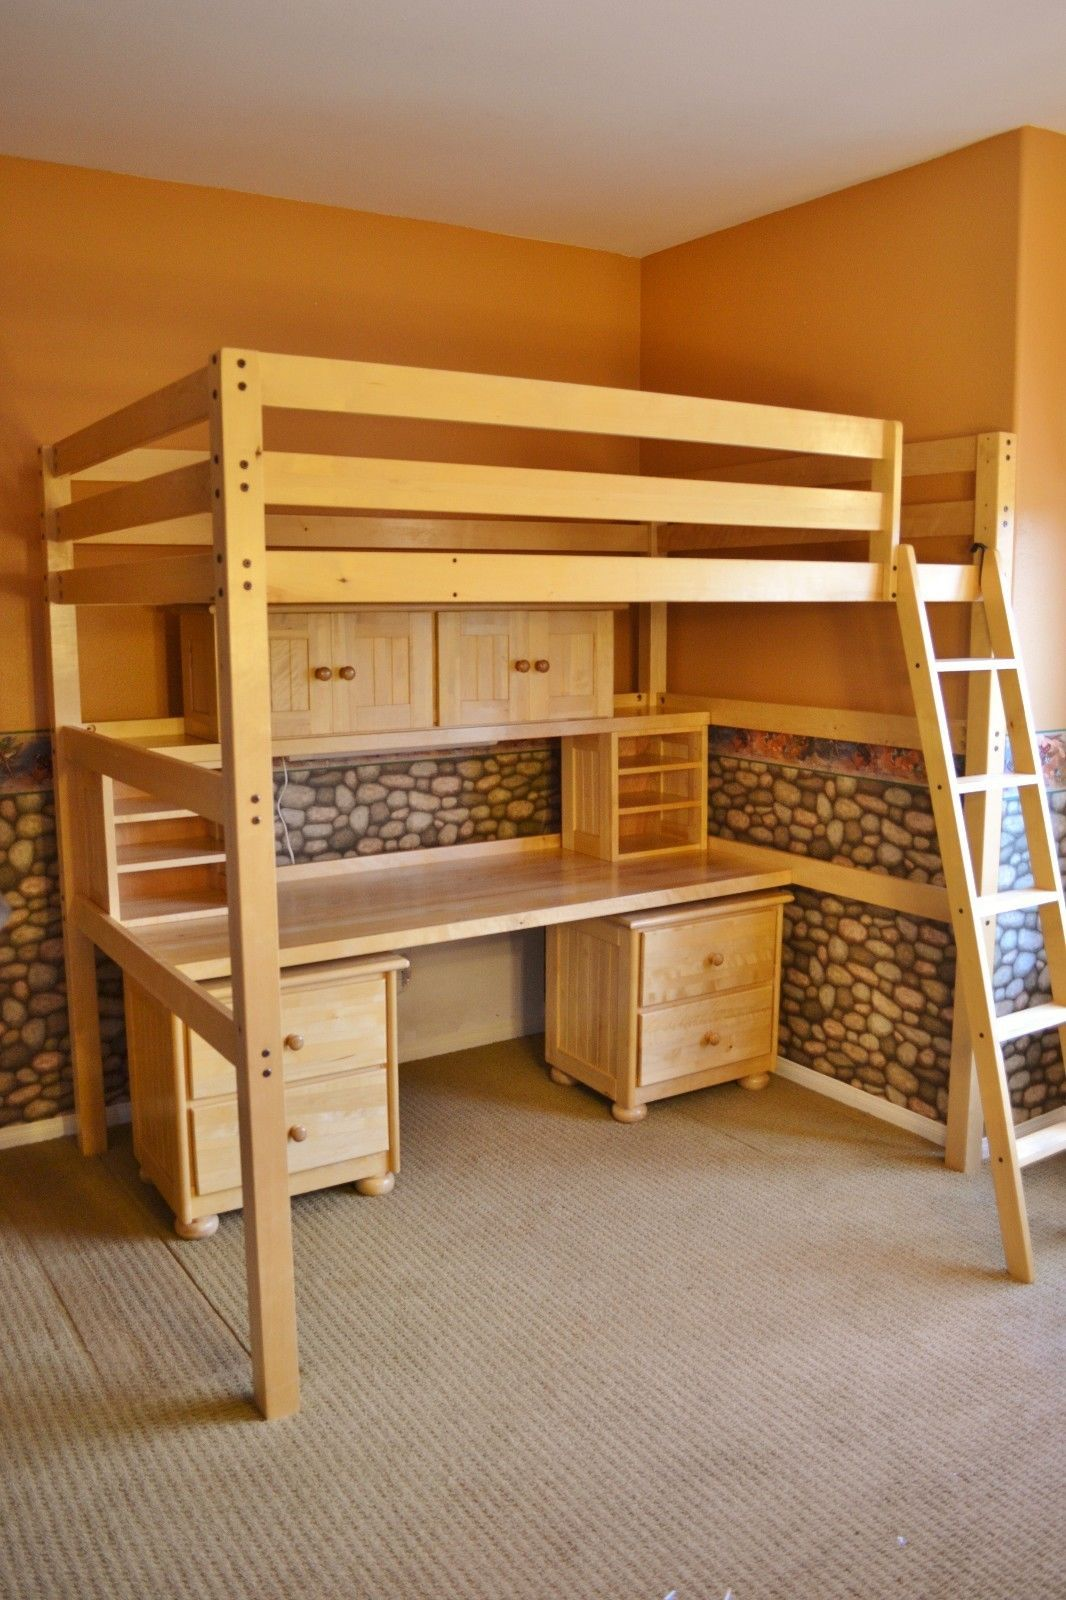 room cool bunk kexhrnh picture of with bed create loft great lakehouse kids twin desk beds